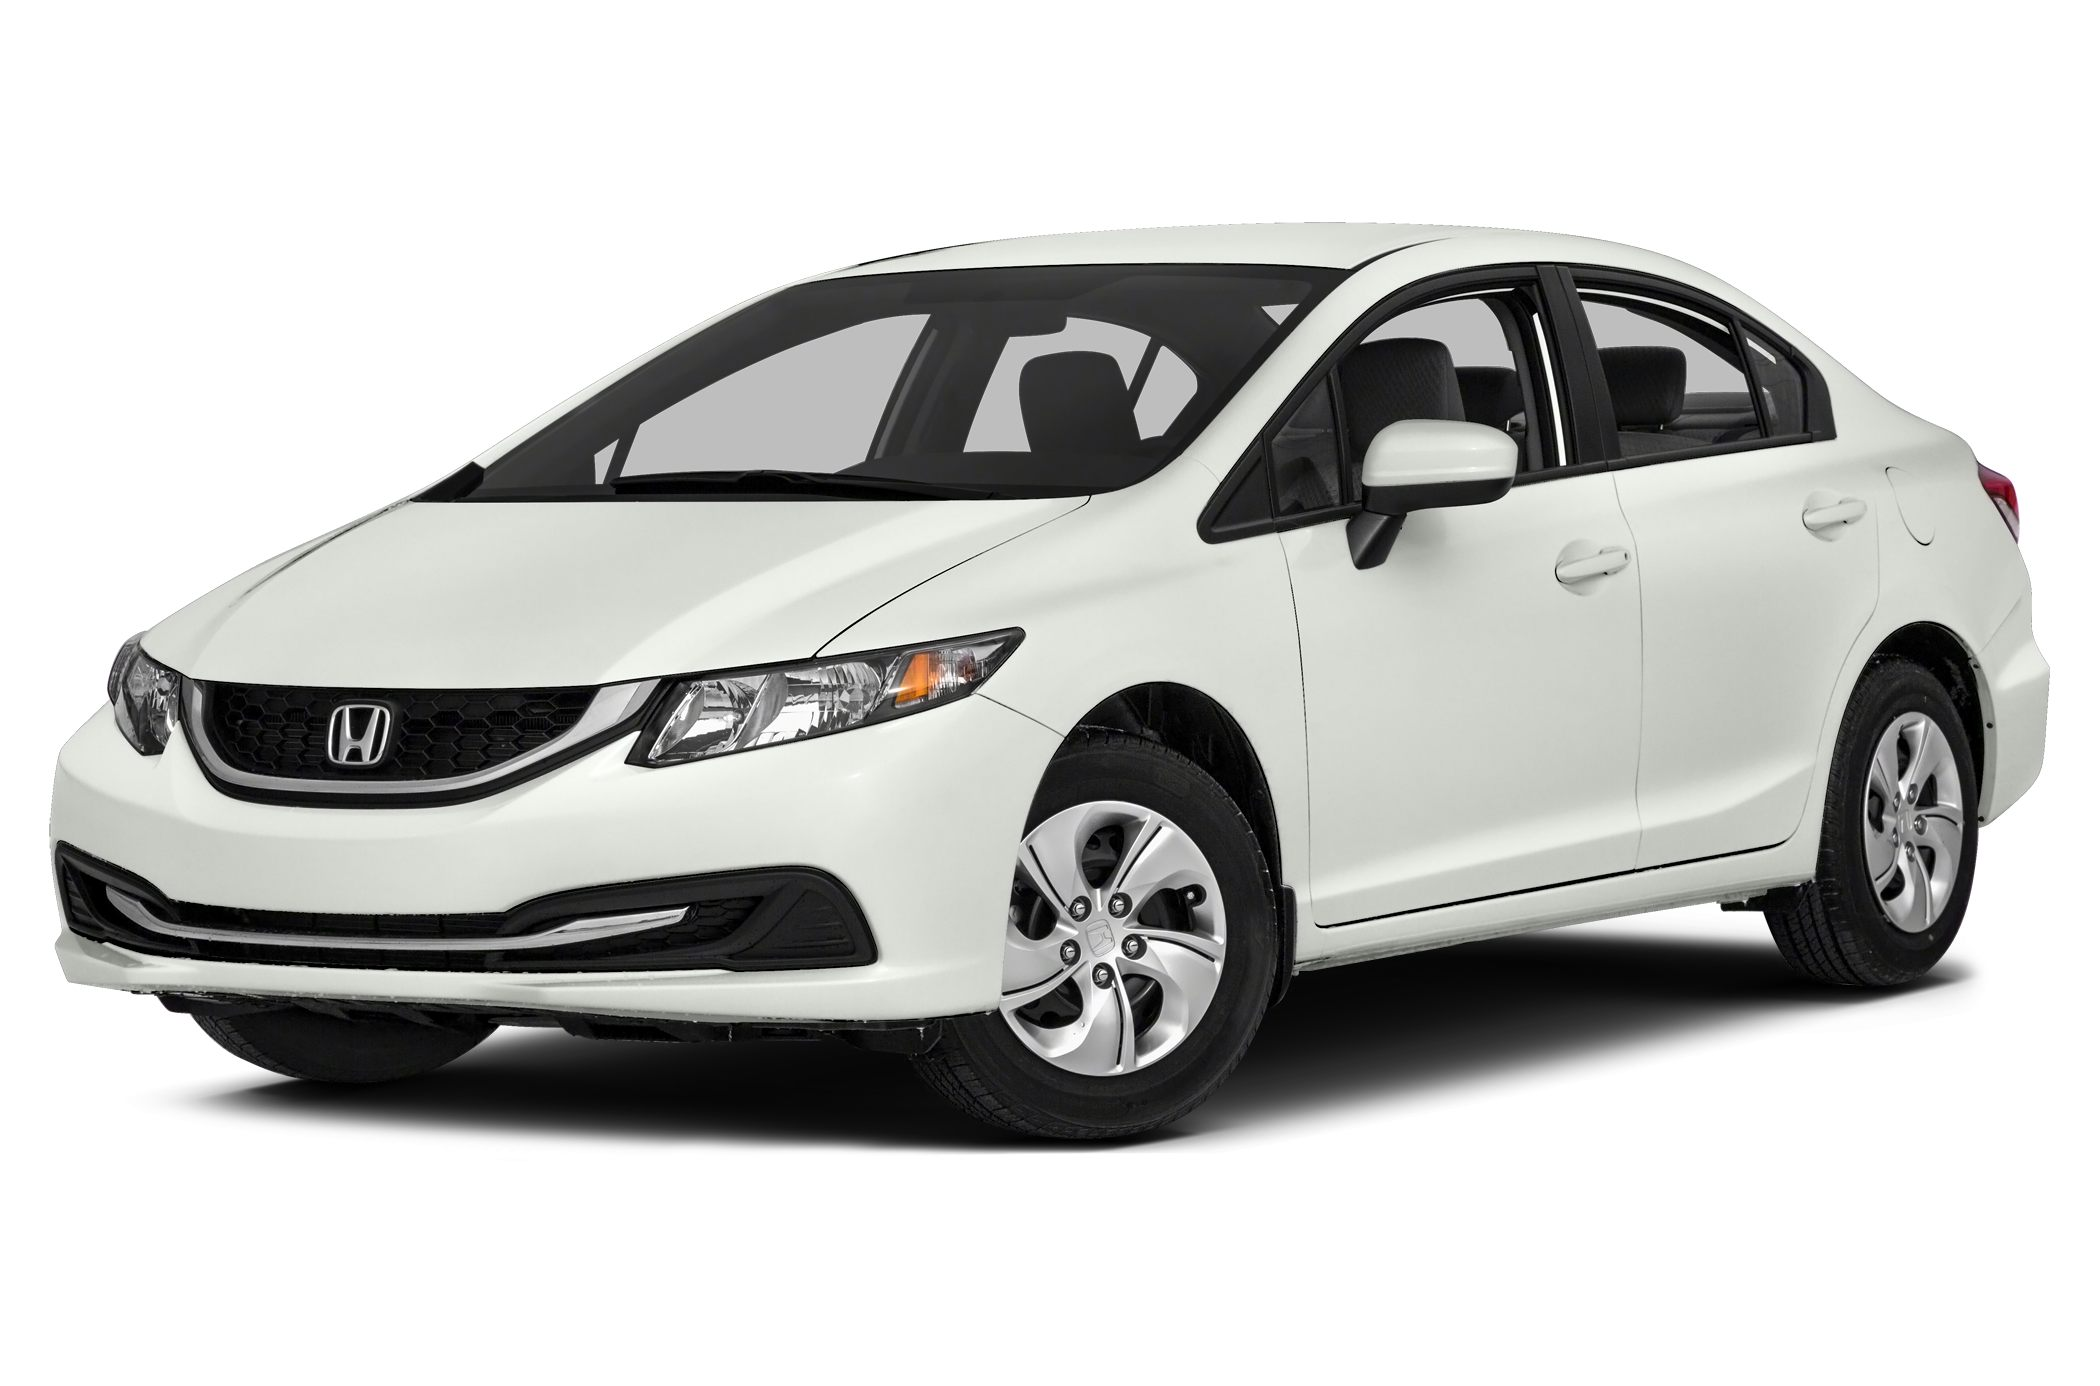 2014 Honda Civic LX Sedan for sale in Scranton for $19,980 with 10 miles